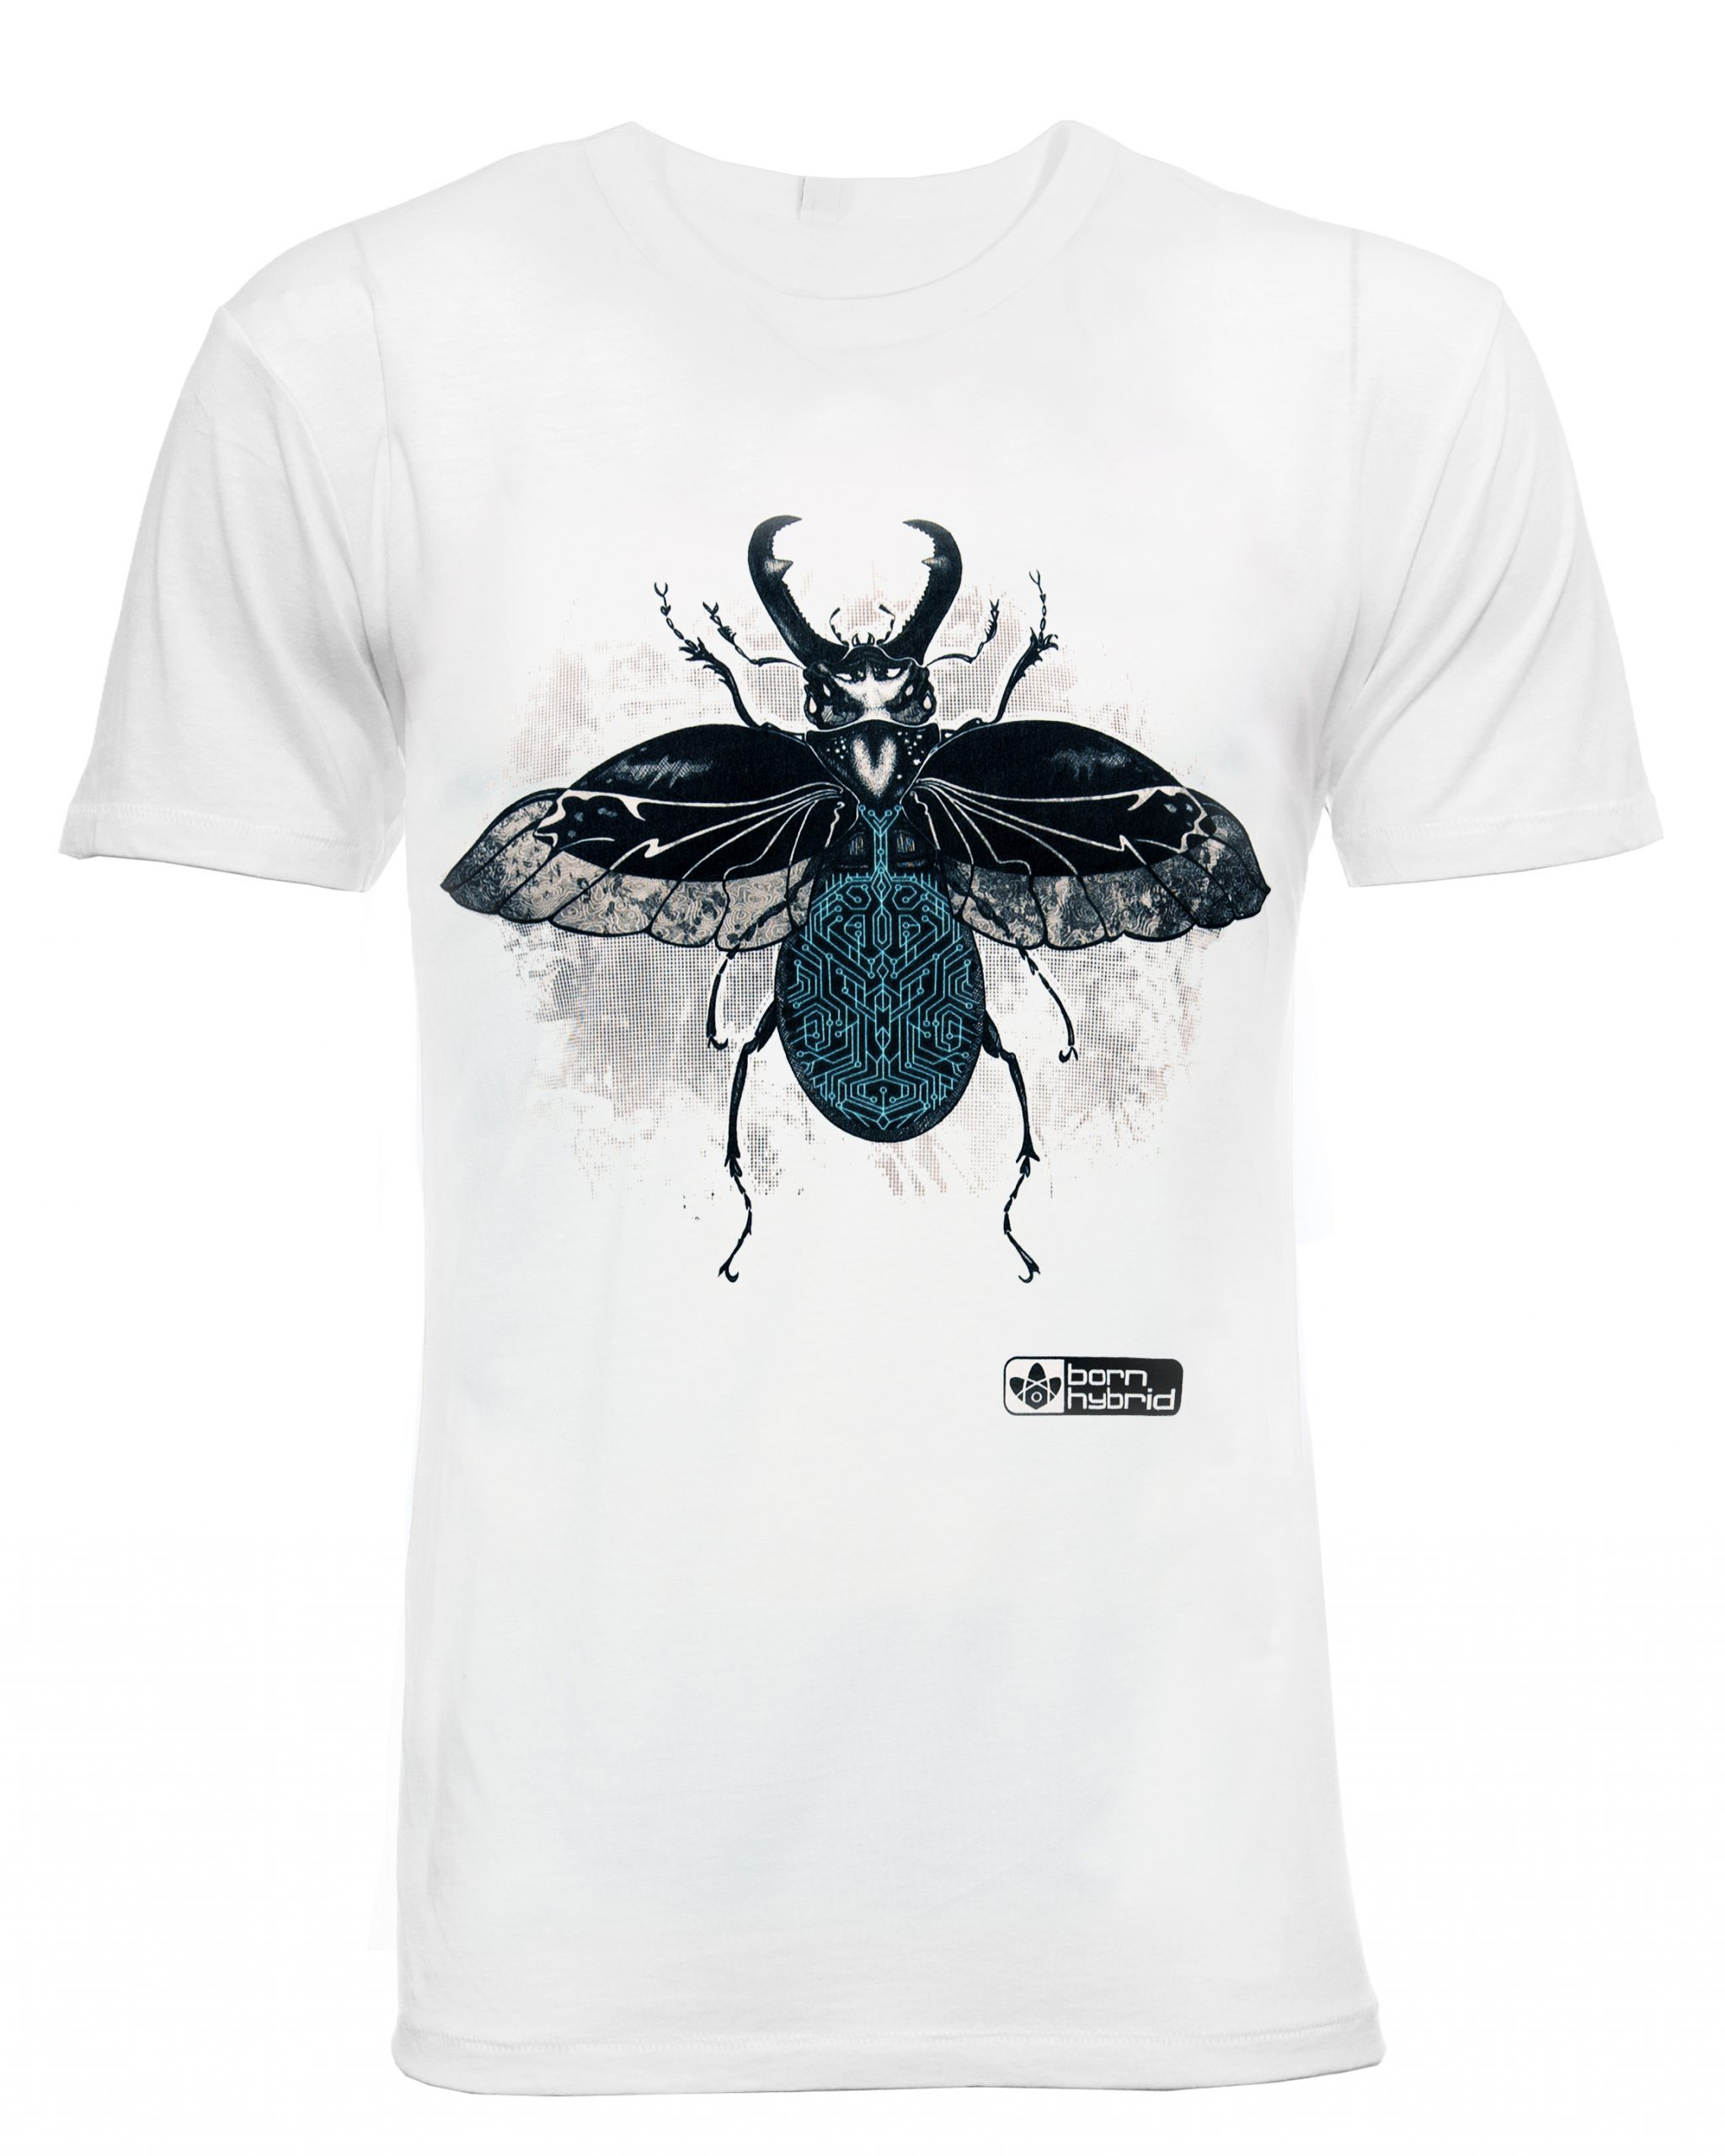 Stag beetle graphic t-shirt in organic cotton with a detailed, hand drawn design